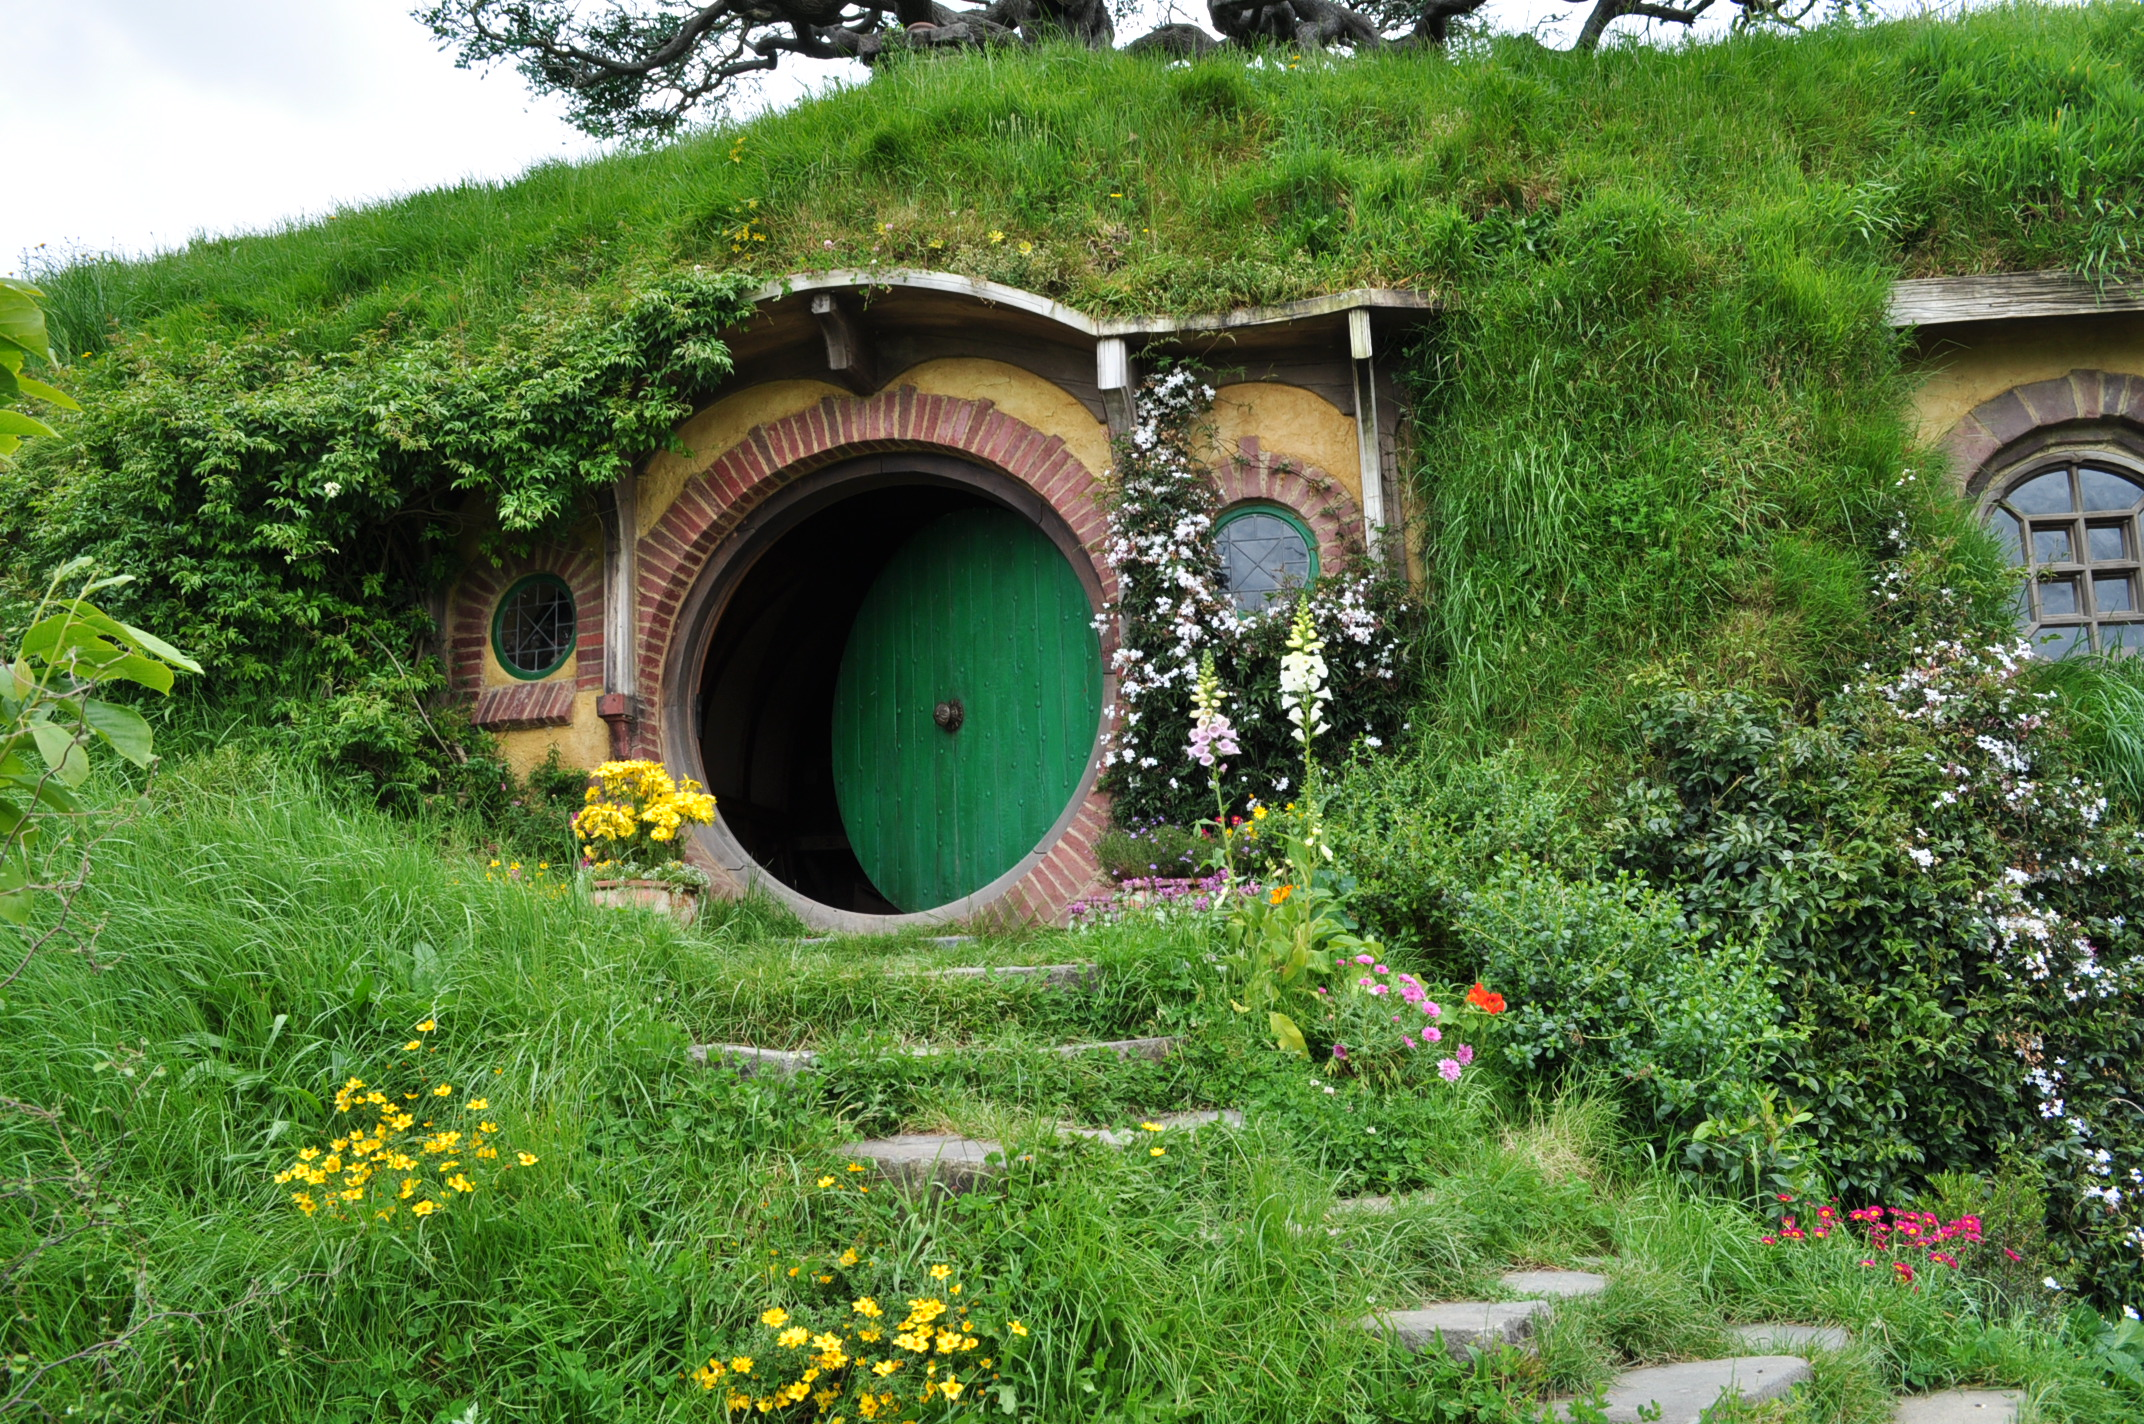 hobbit house « Shrine of Dreams